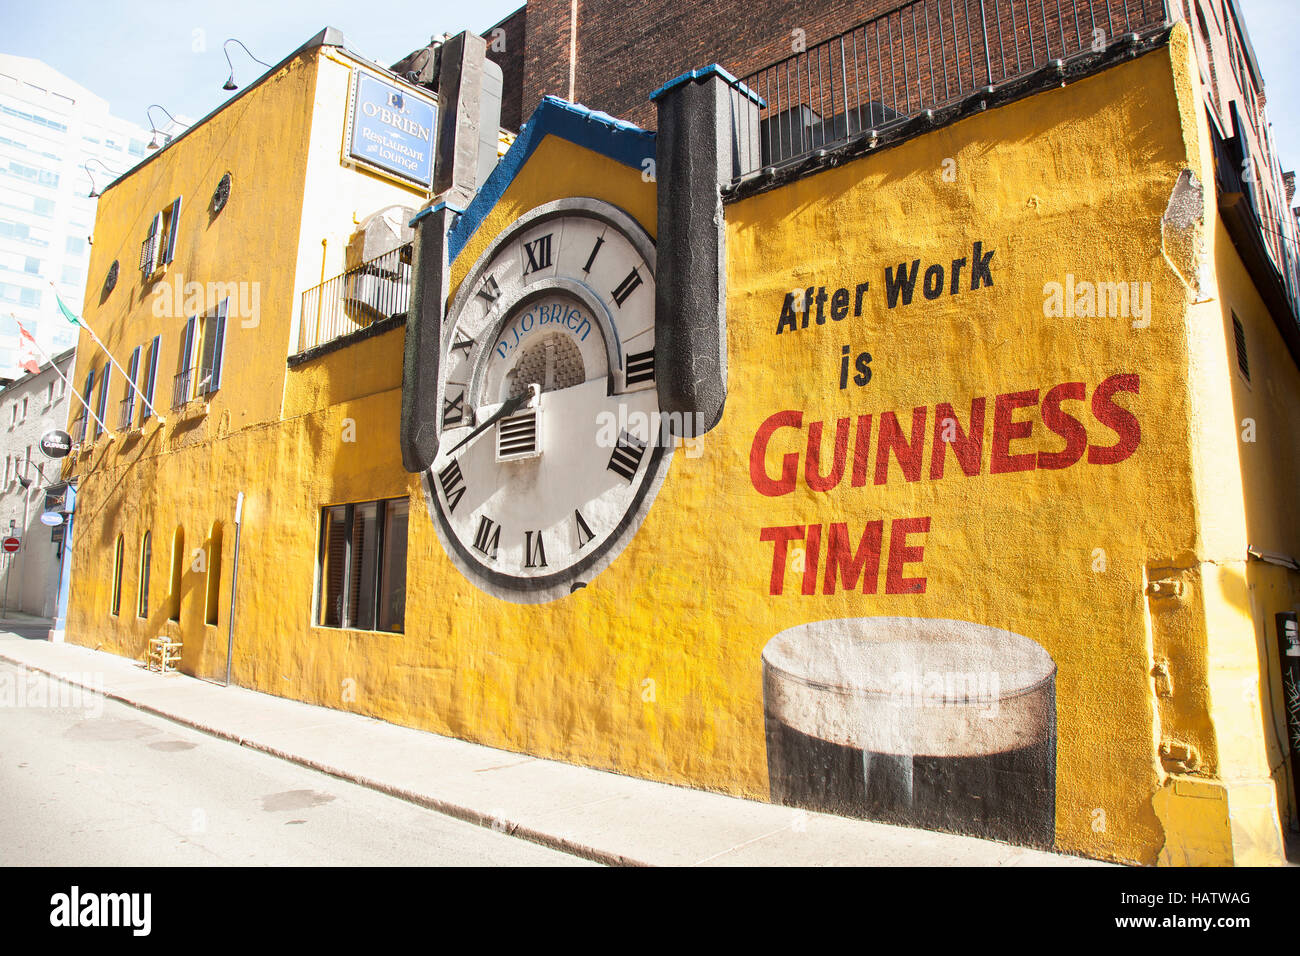 Irish Pub Mural Stock Photos & Irish Pub Mural Stock Images - Alamy